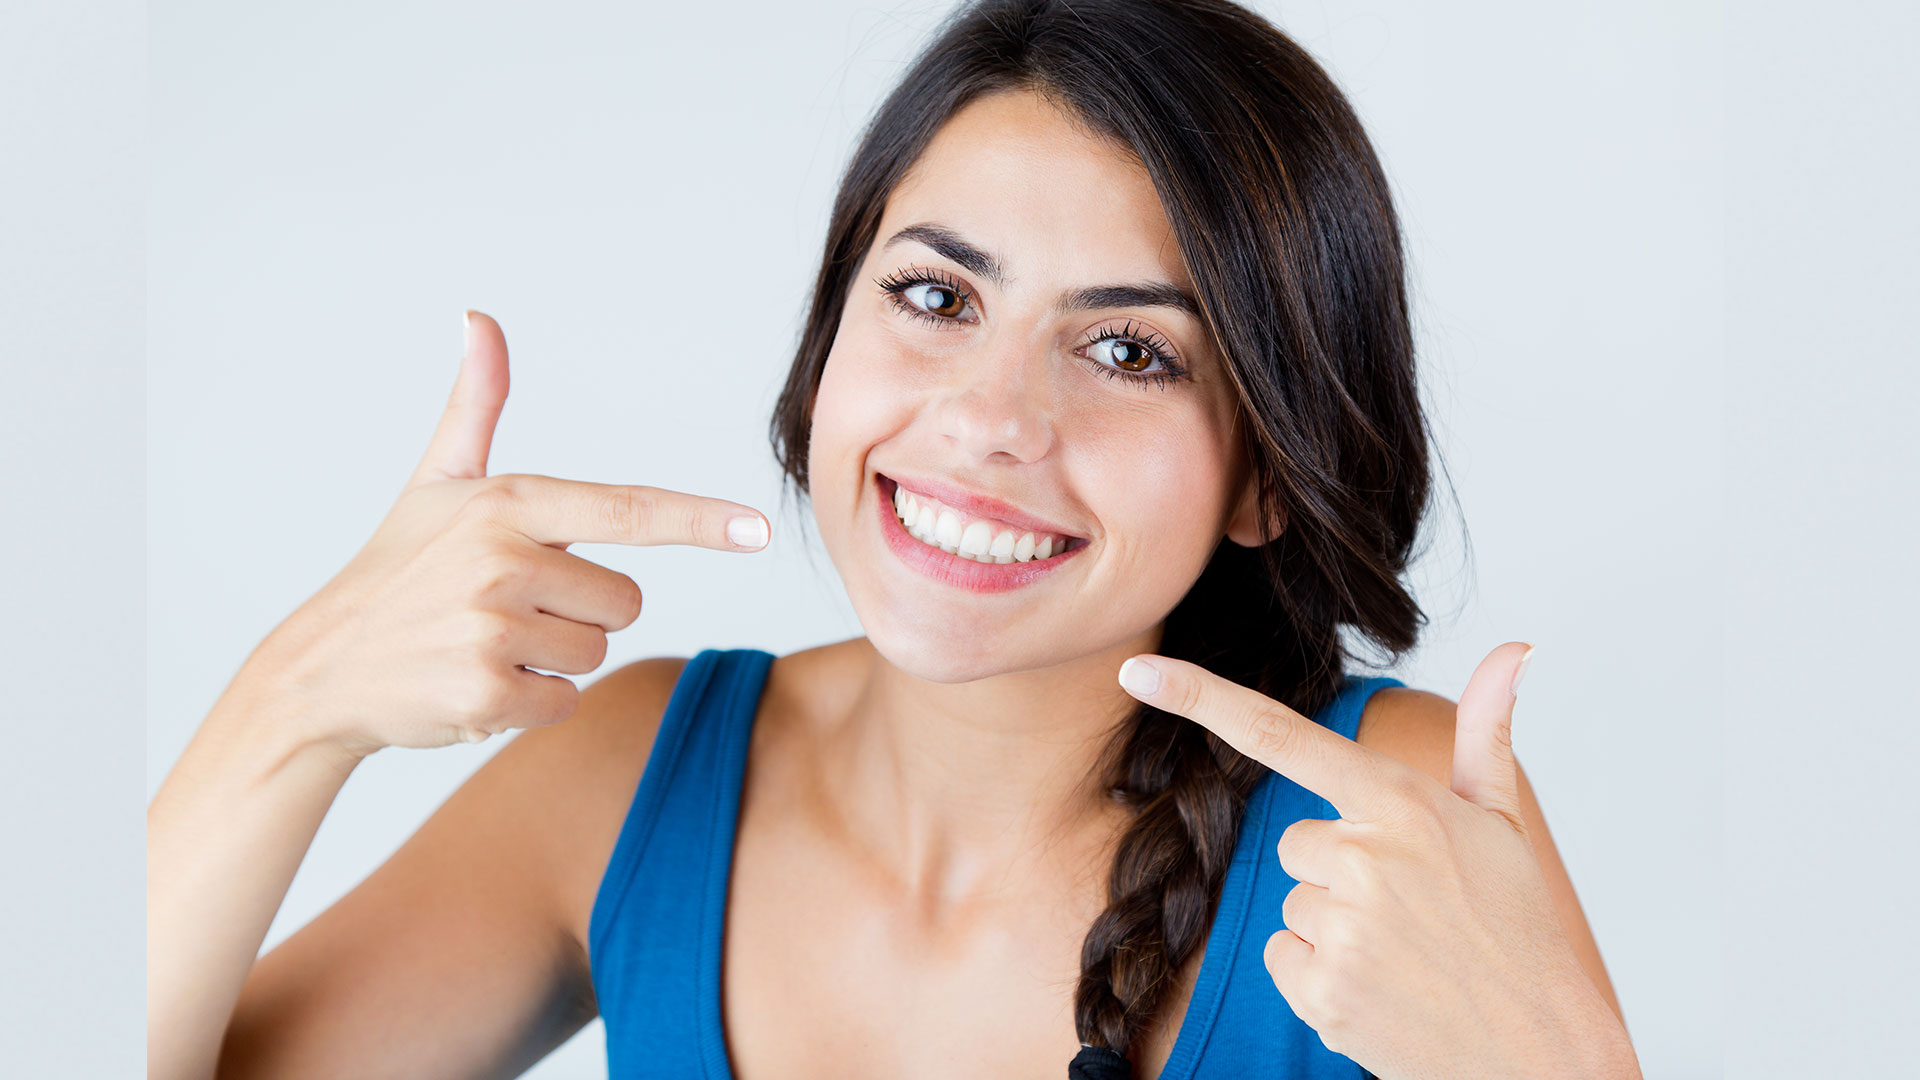 5 Options to Get a Smile Makeover